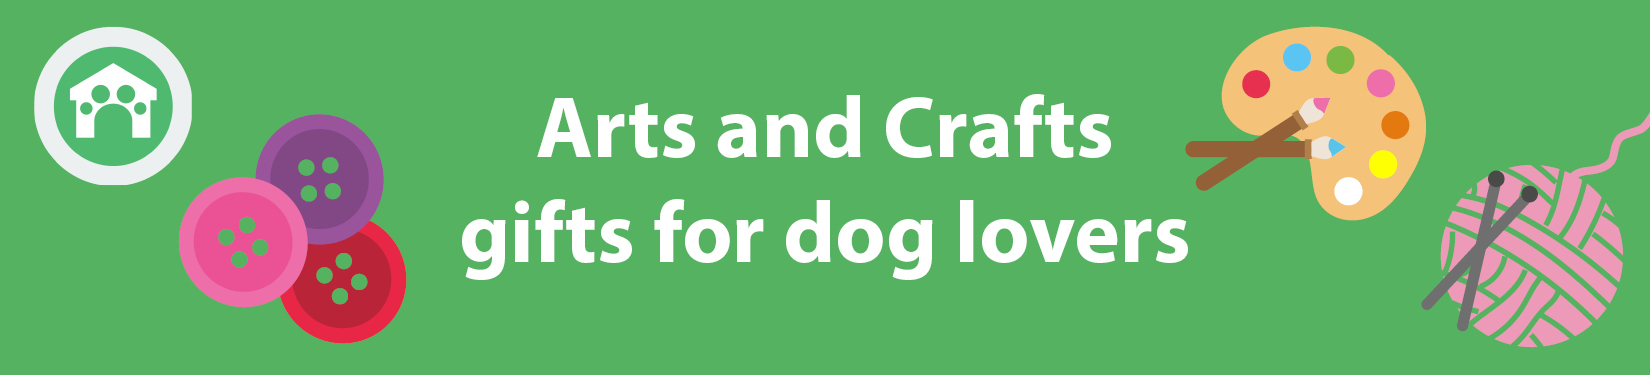 Arts and Crafts gifts for dog lovers header image